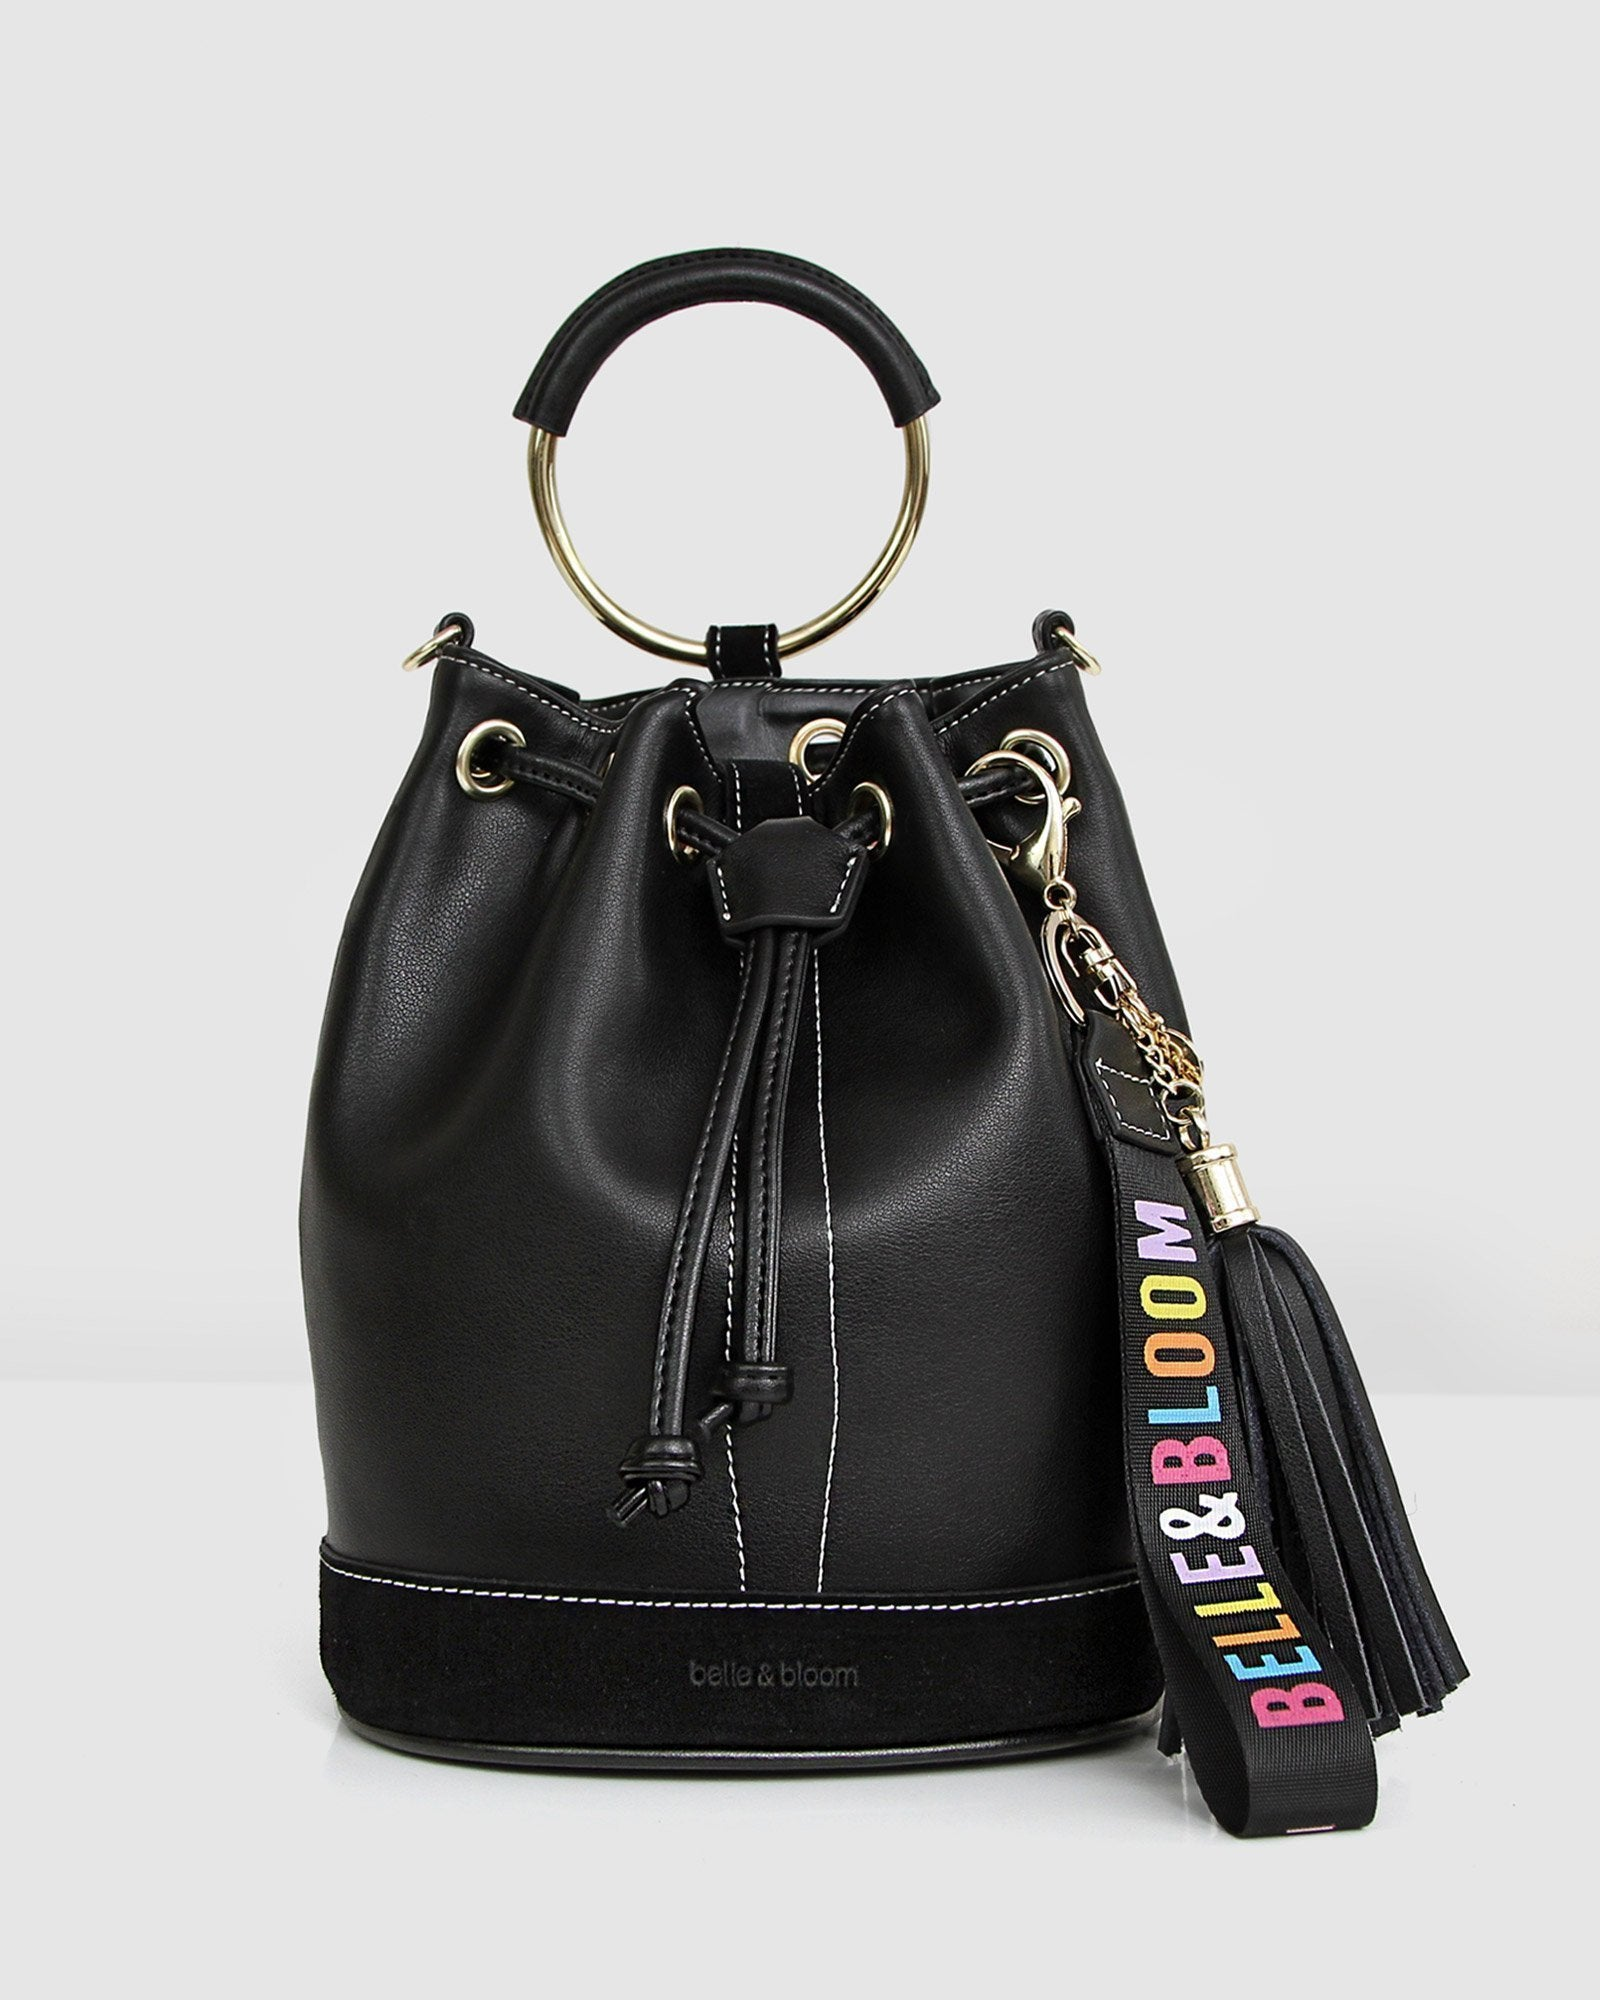 Rainbow Leather Bucket Bag - Black